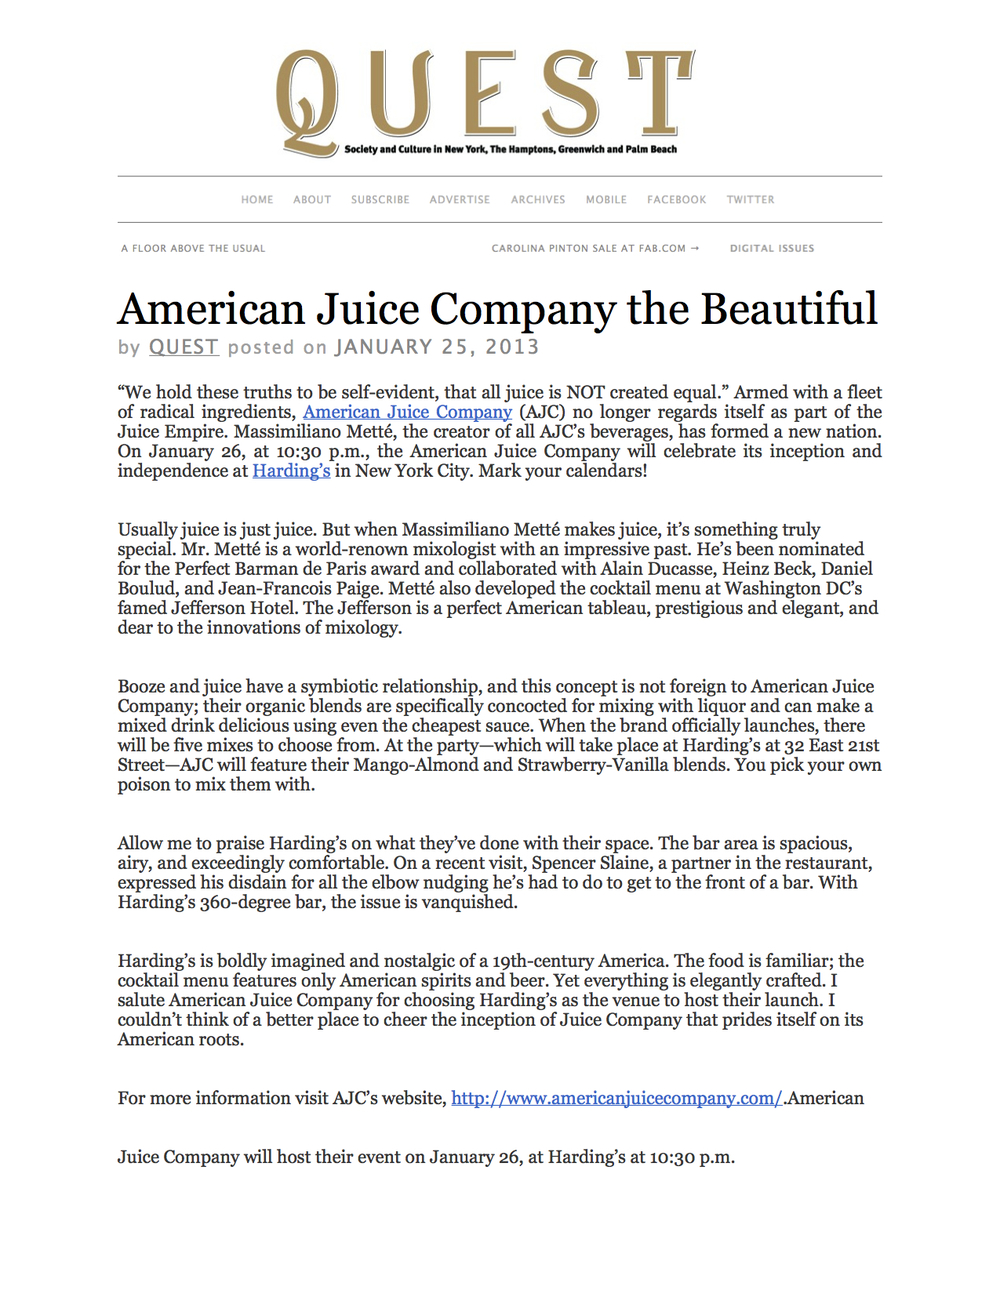 """We hold these truths to be self-evident, that all juice is NOT created equal."" Armed with a fleet of radical ingredients,American Juice Company (AJC) no longer regards itself as part of the Juice Empire. Massimiliano Metté, the creator of all AJC's beverages, has formed a new nation."